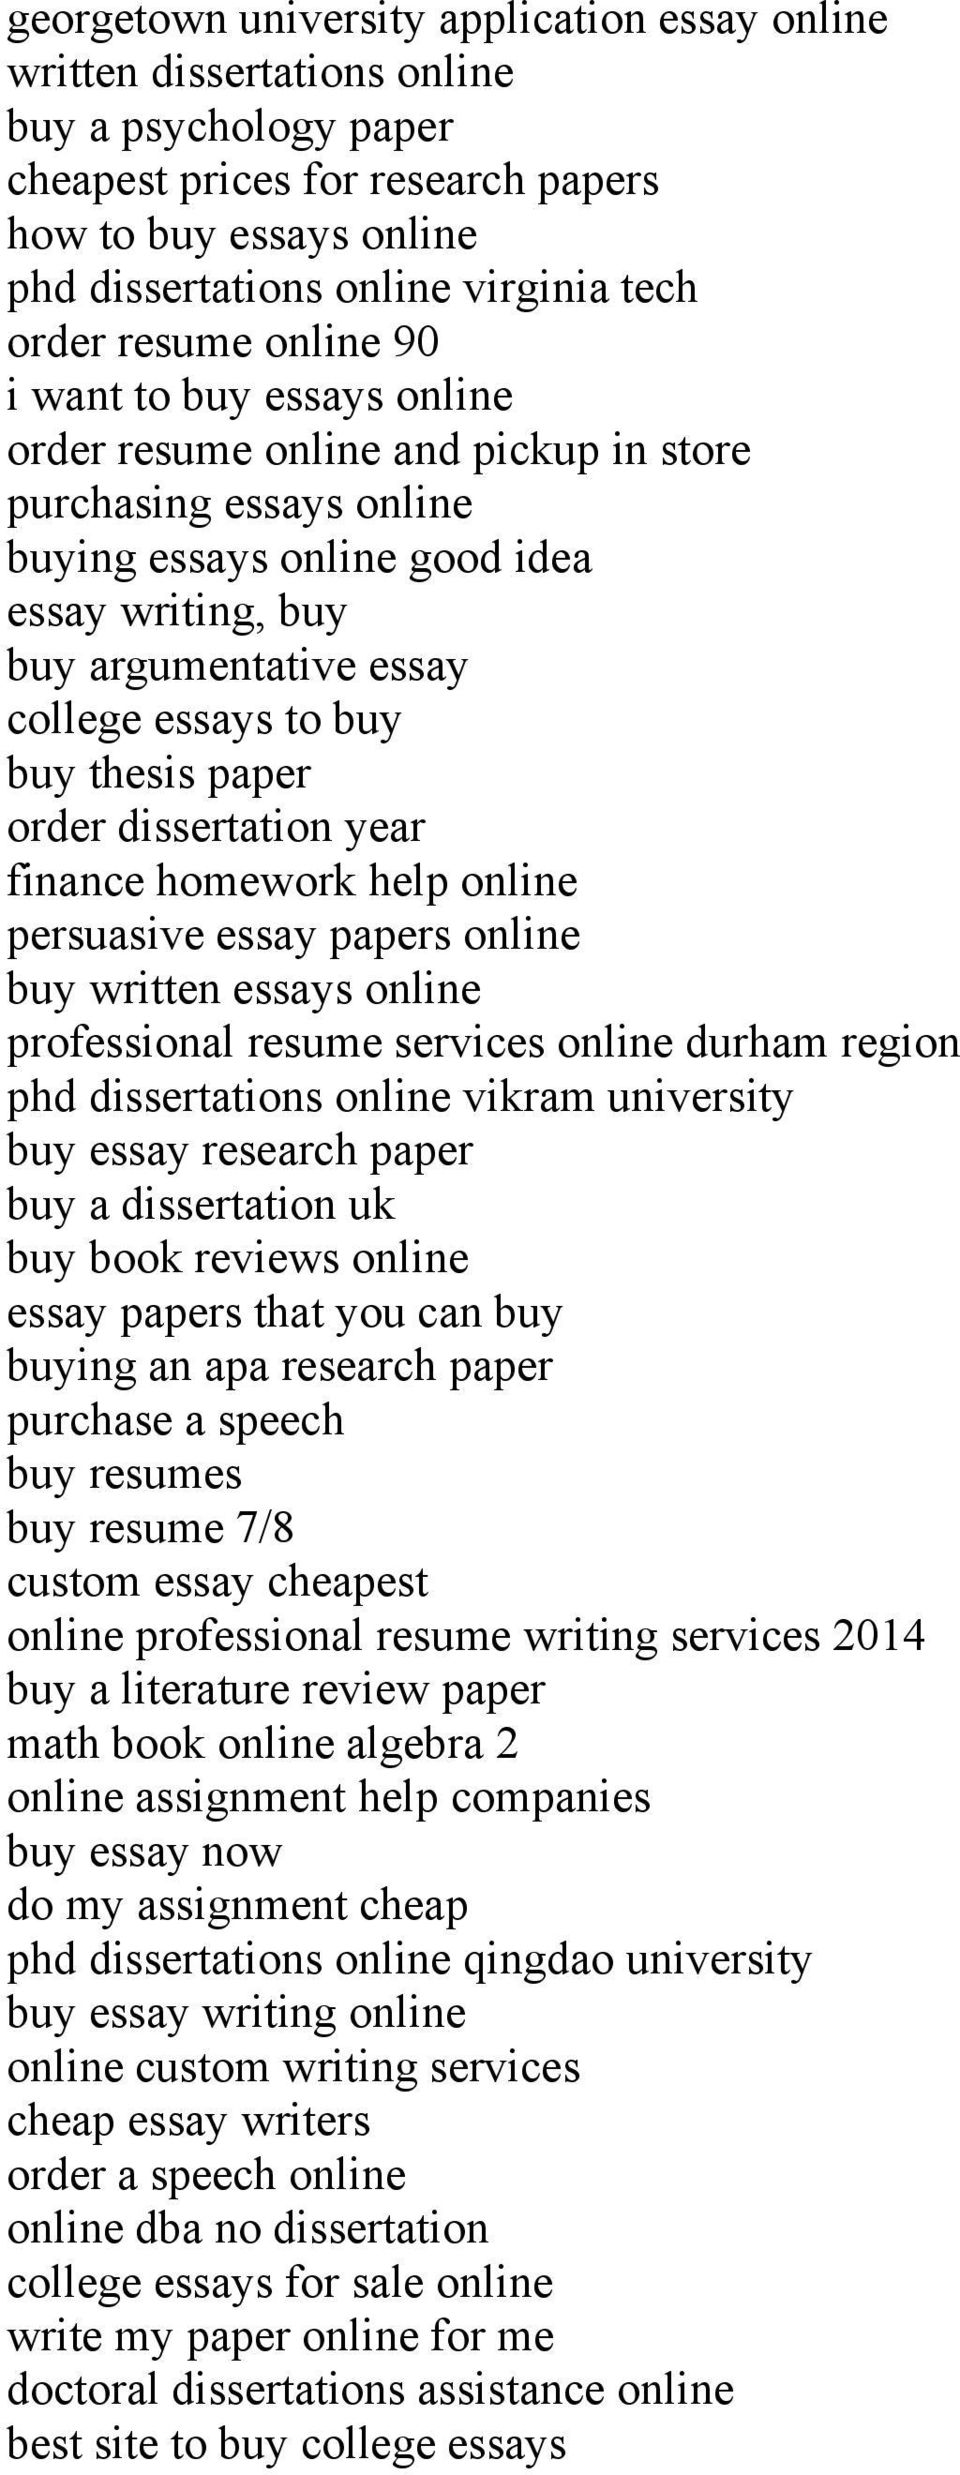 004 Research Paper Buying Page 4 Best A Consumer Behaviour Is Plagiarism Full